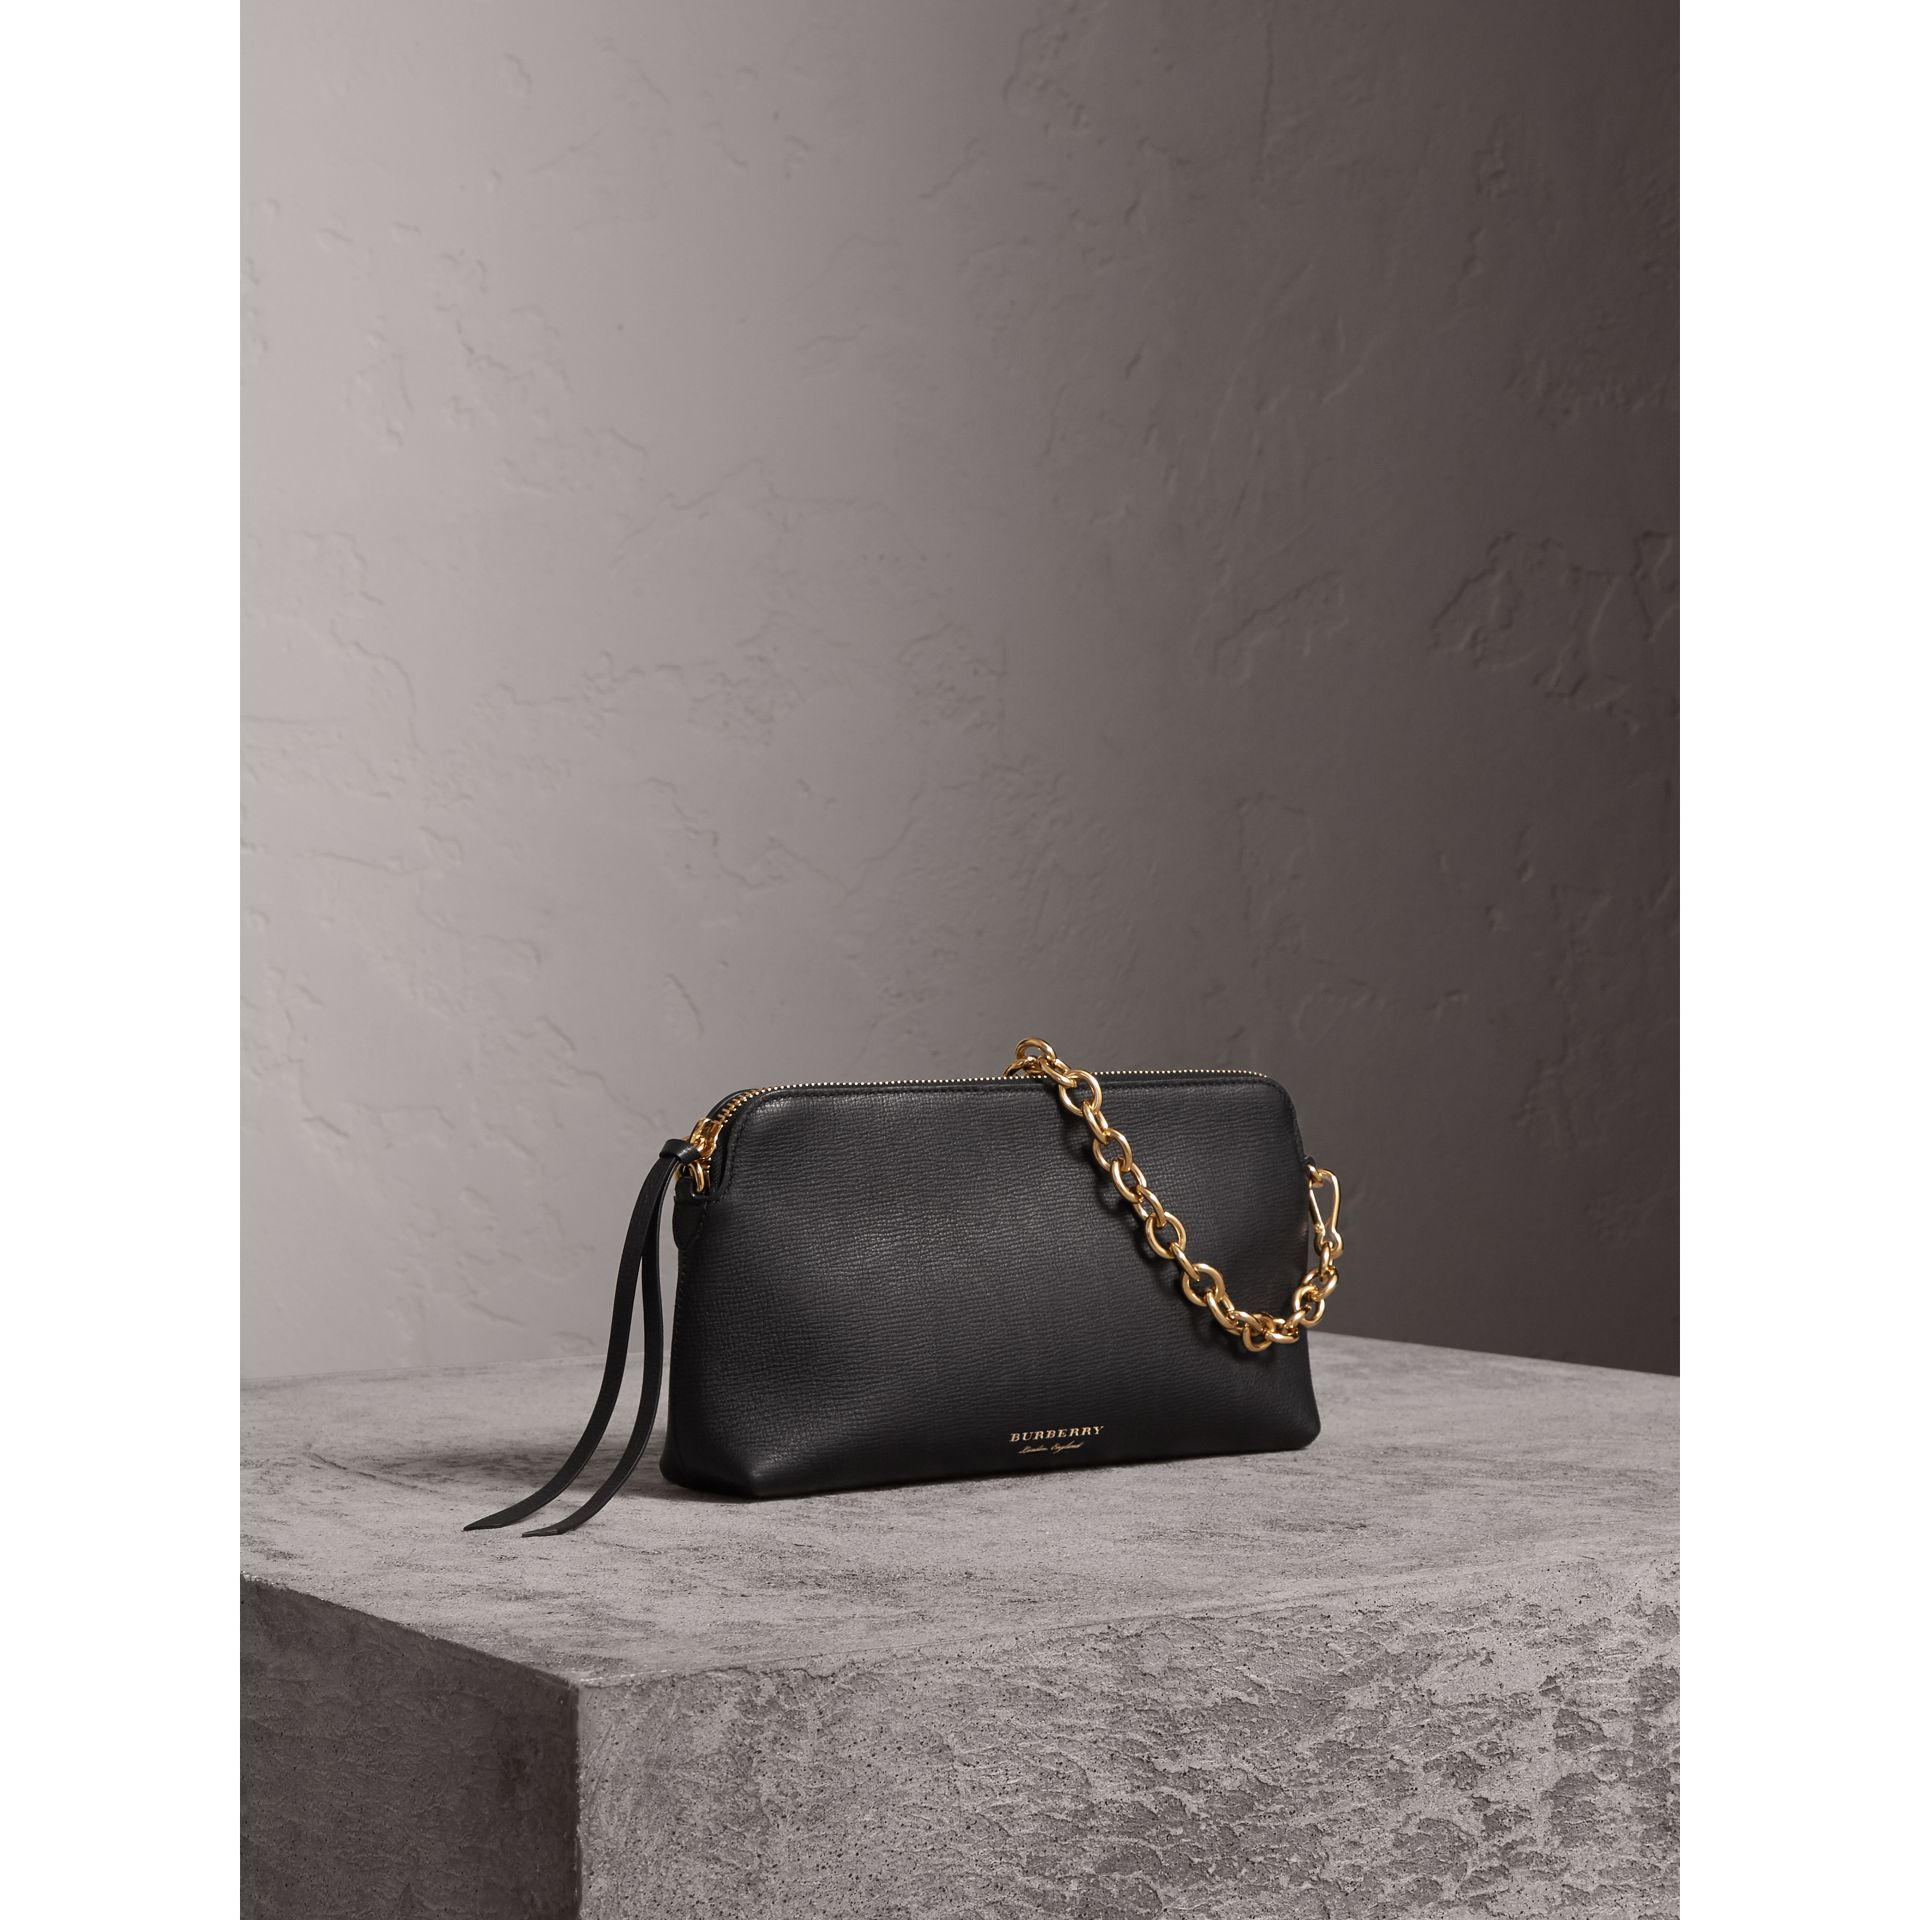 Grainy Leather Clutch Bag in Black - Women | Burberry - gallery image 7